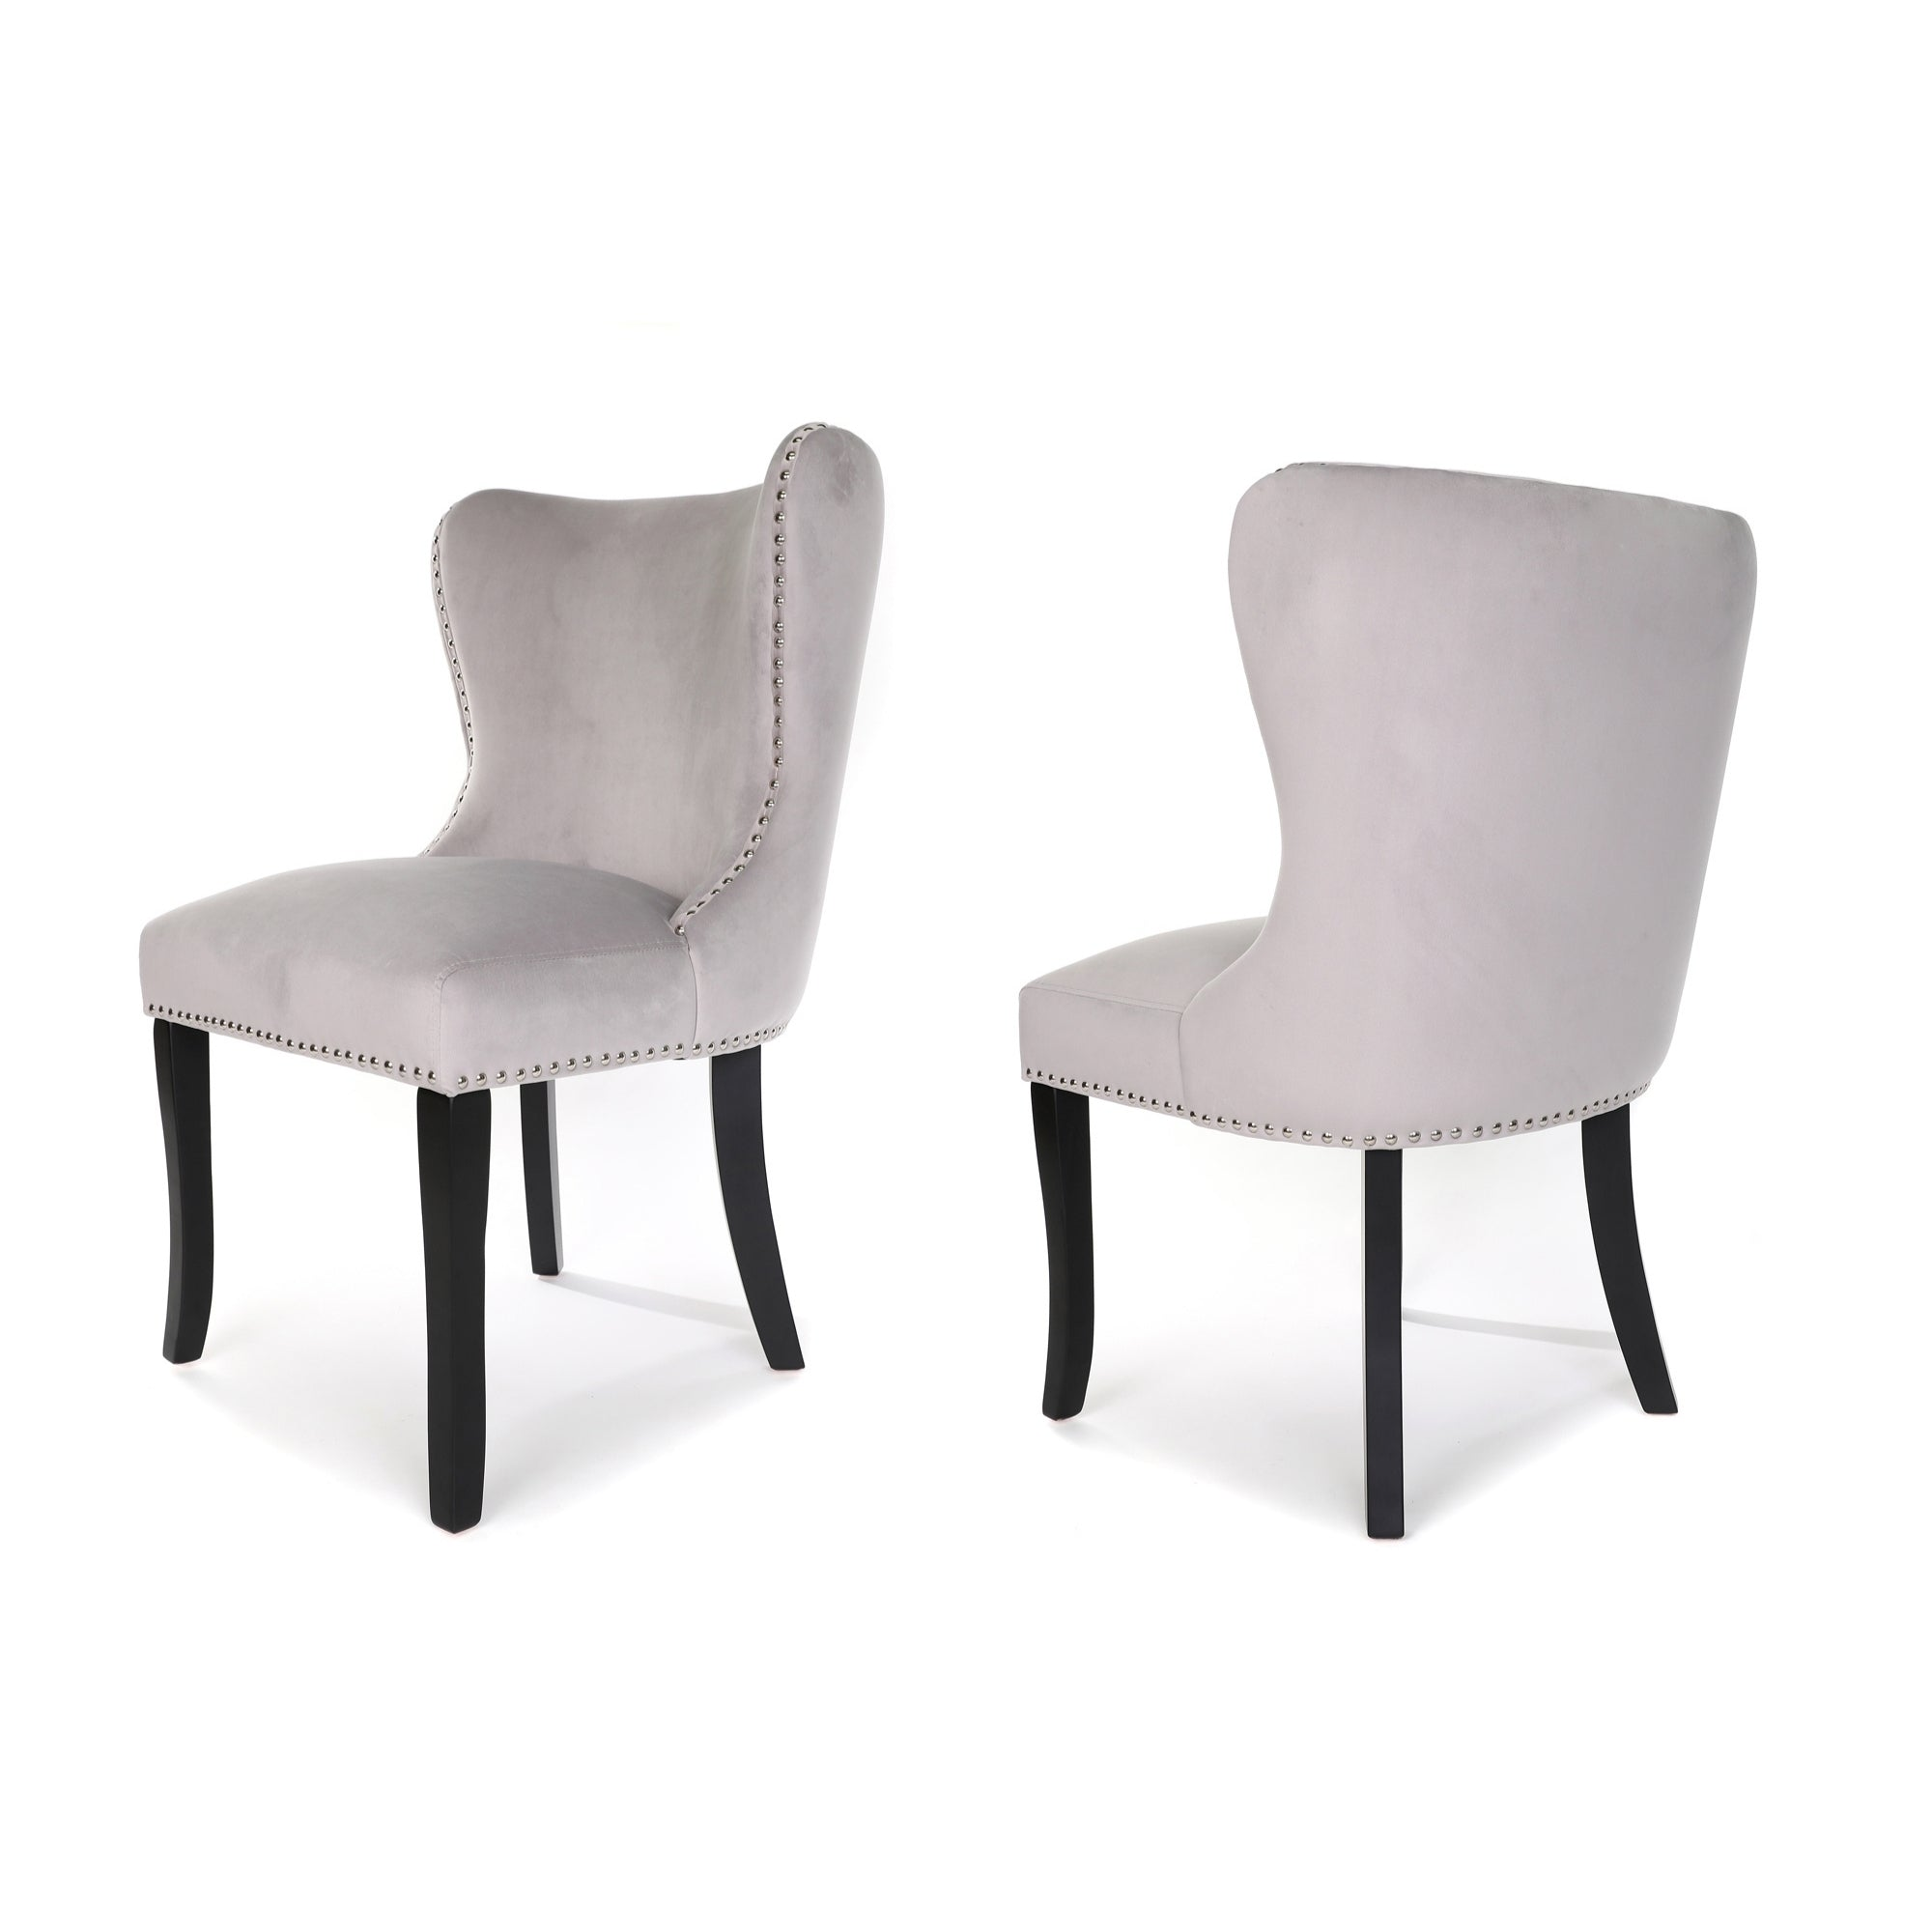 Amalfi Dining Chair, Night Grey Velvet, Black wood legs and Stud detail